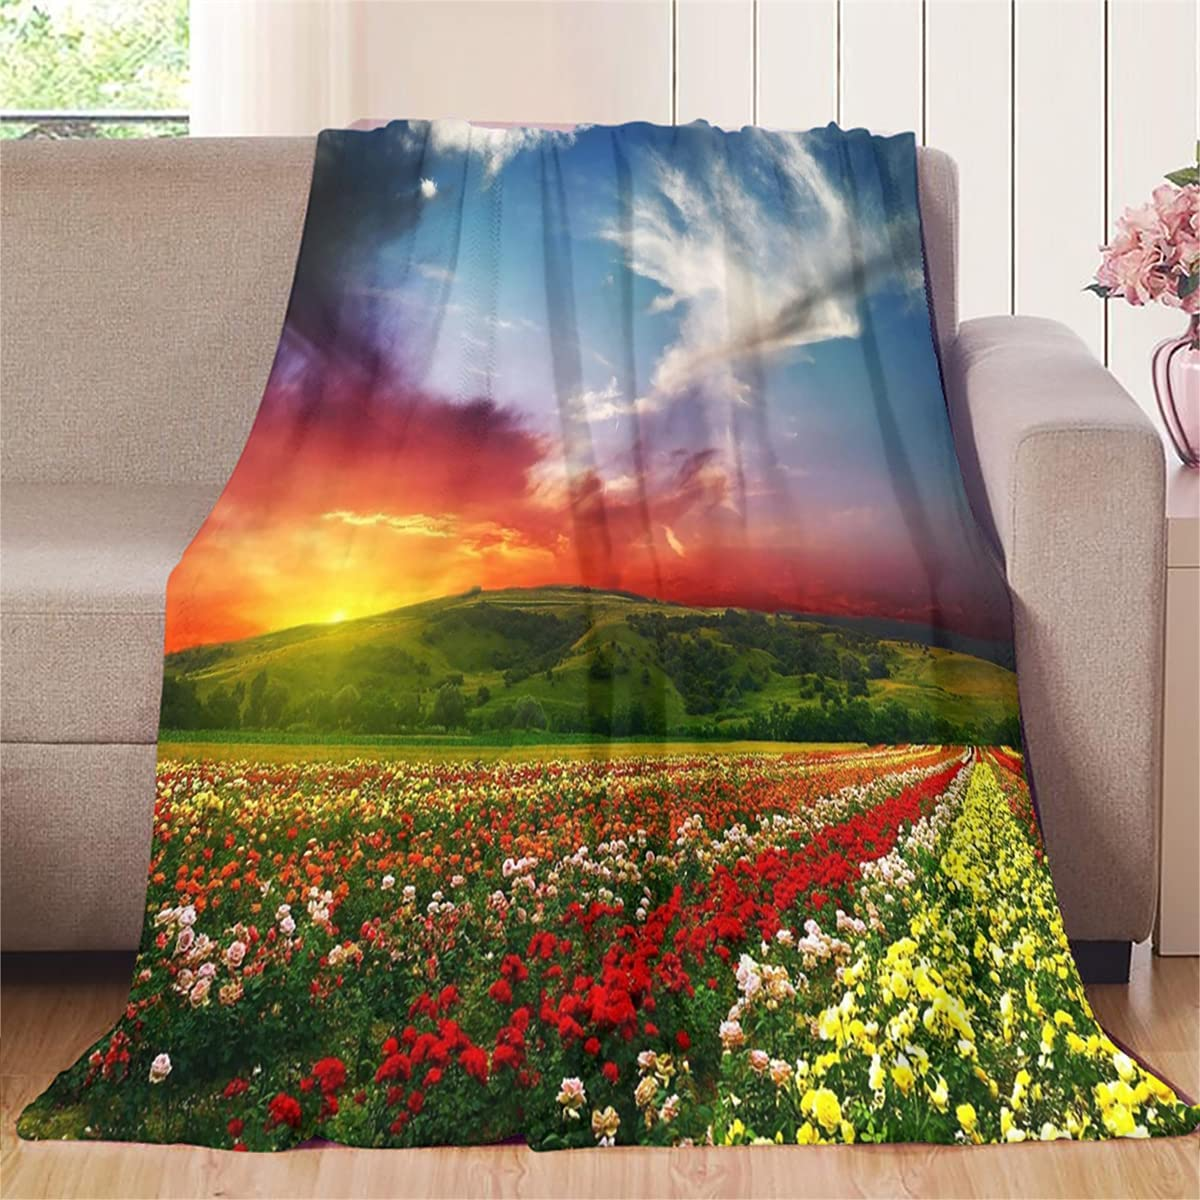 Flannel Blanket Large Neat Sunset in NEW The of Suitable Mesa Mall Sea Flowers